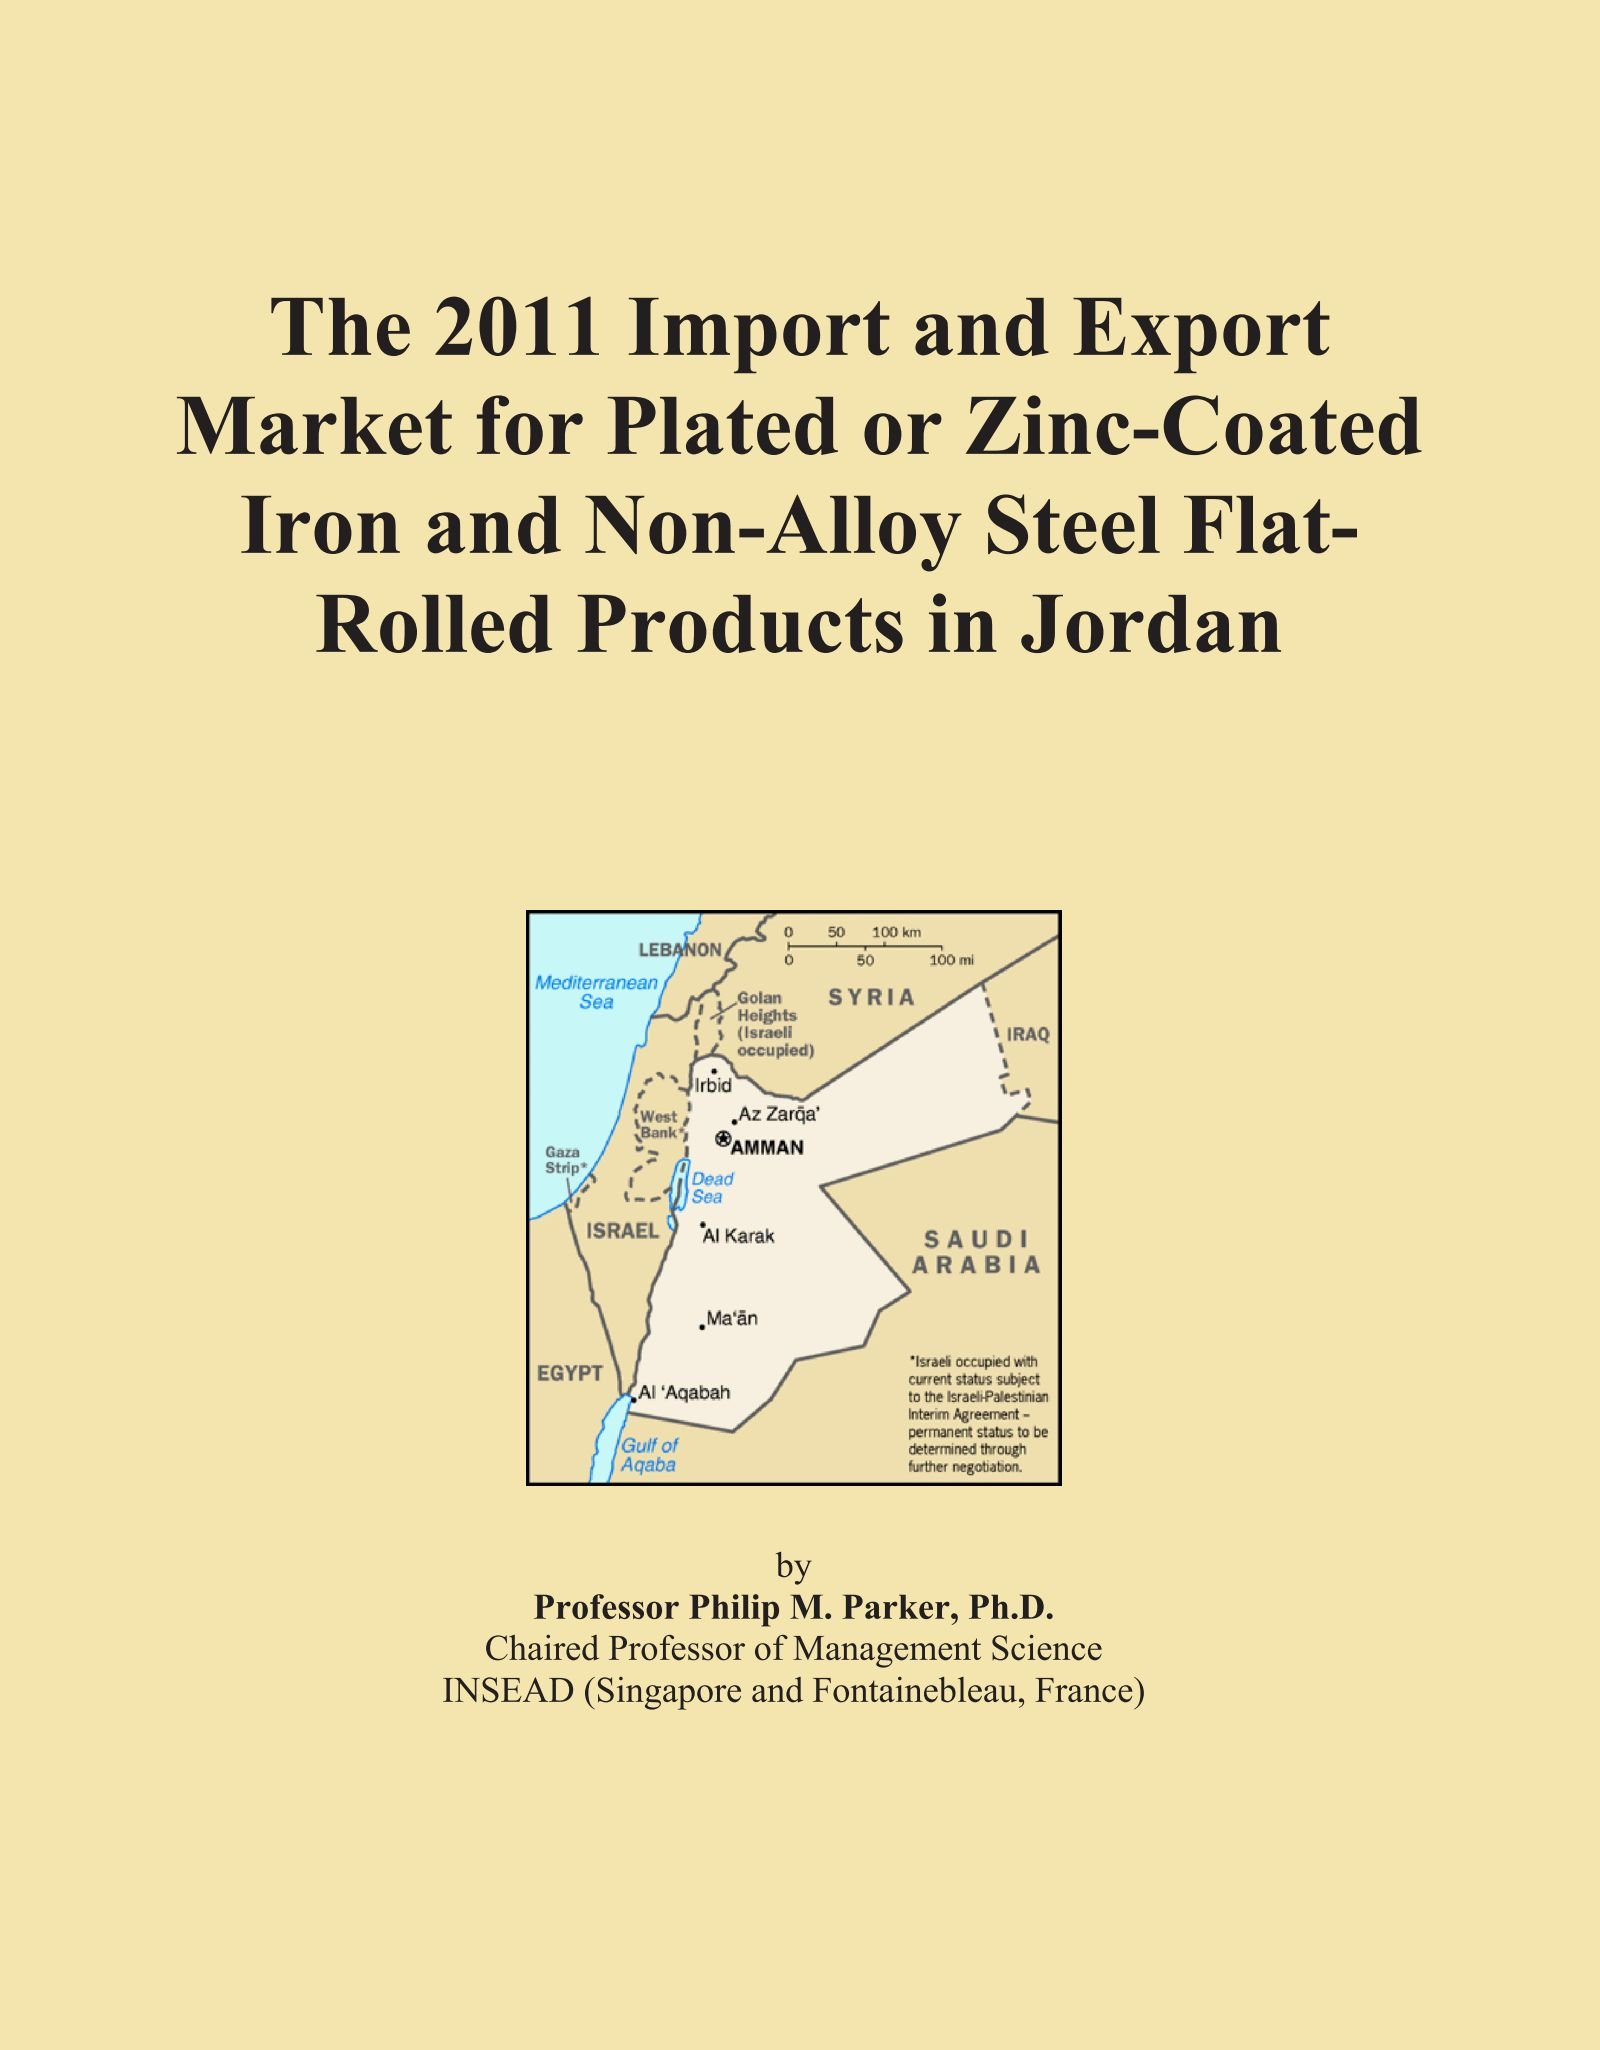 Download The 2011 Import and Export Market for Plated or Zinc-Coated Iron and Non-Alloy Steel Flat-Rolled Products in Jordan ebook